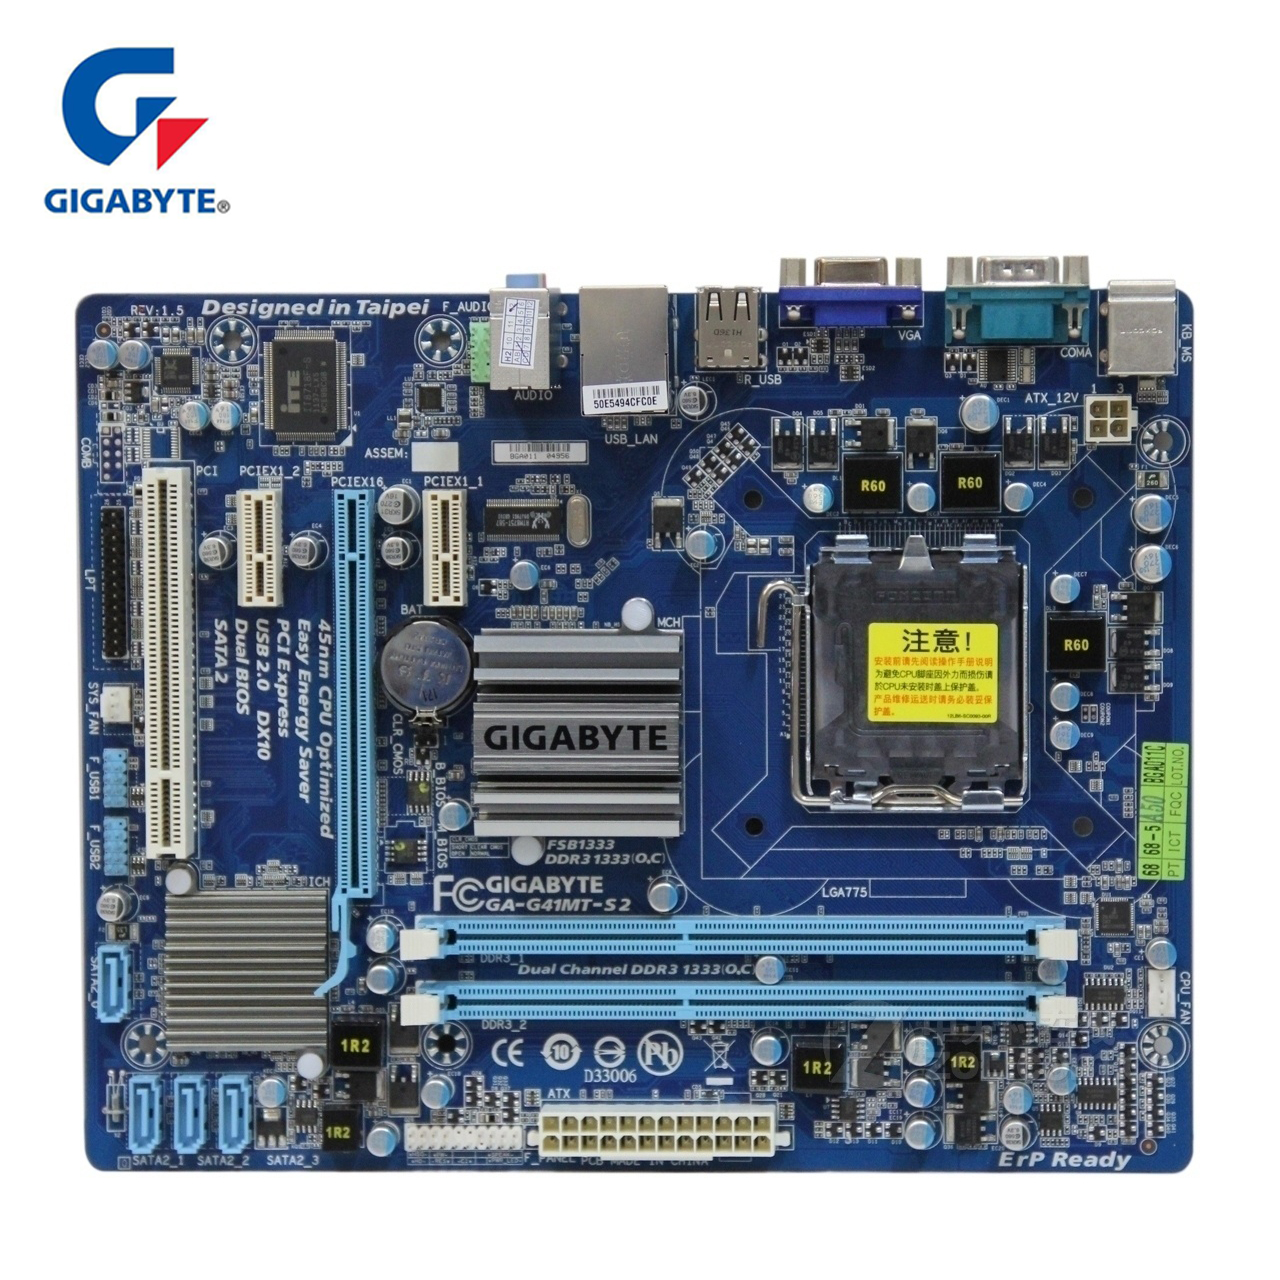 100 Gigabyte GA G41MT S2 Motherboard LGA 775 DDR3 Micro ATX USB2 0 Desktop Mainboard SATA2 For Intel G41 D3H DDR3 G41MT S2 Used in Motherboards from Computer Office